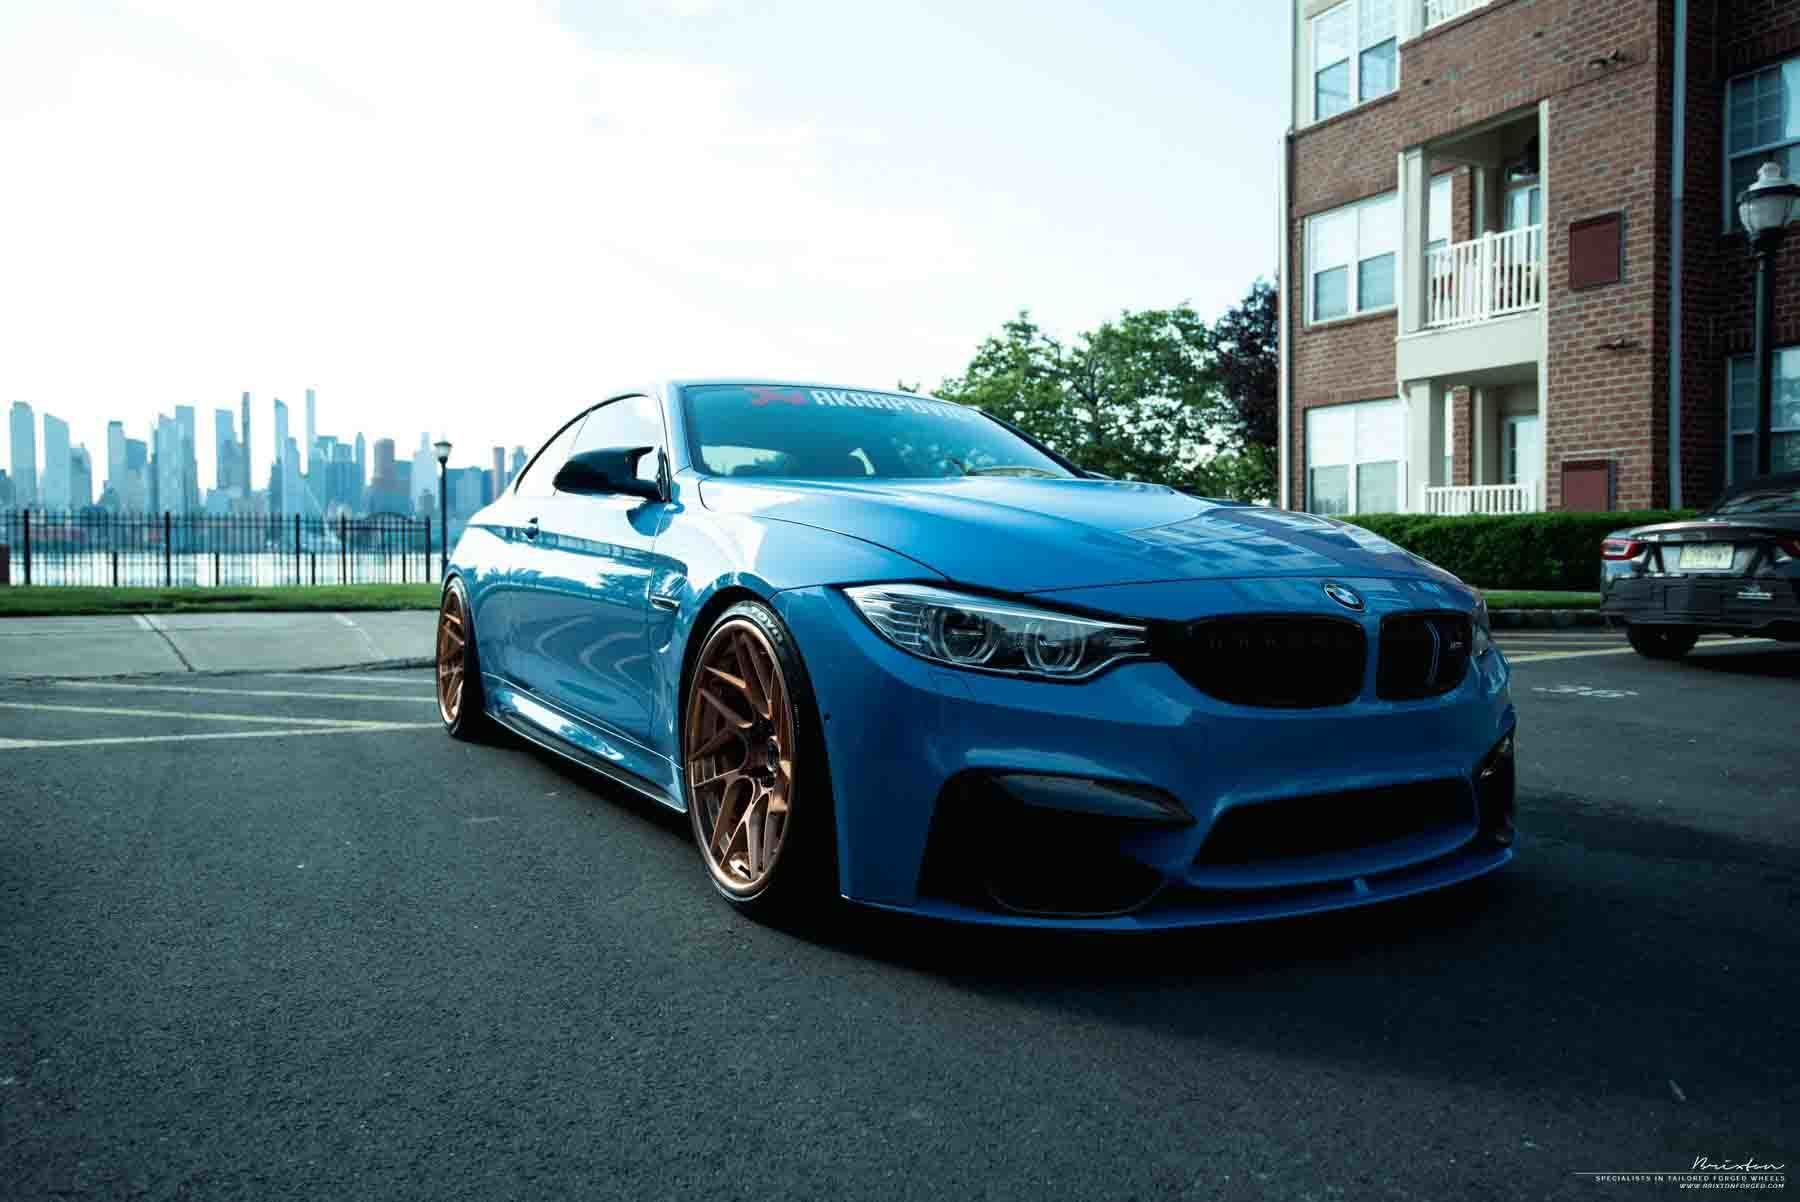 images-products-1-2545-232974833-yas-marina-blue-bmw-m4-f82-brixton-forged-cm7-targa-series-forged-concave-wheels-rose-gold-4-180.jpg